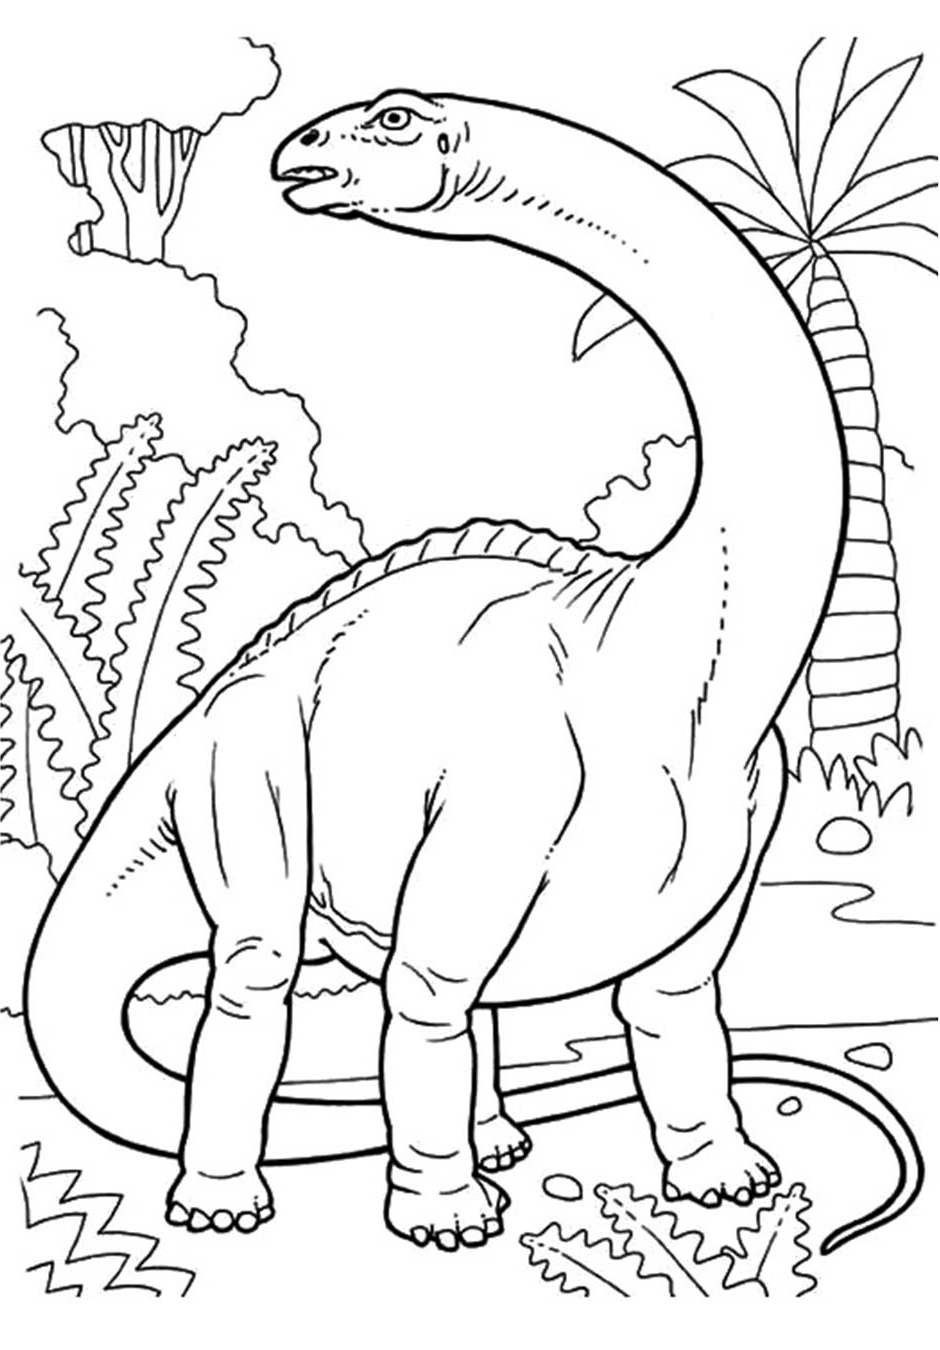 dinosaurs printable coloring pages 36 dinosaur coloring pages easy hard pages print dinosaurs pages printable coloring